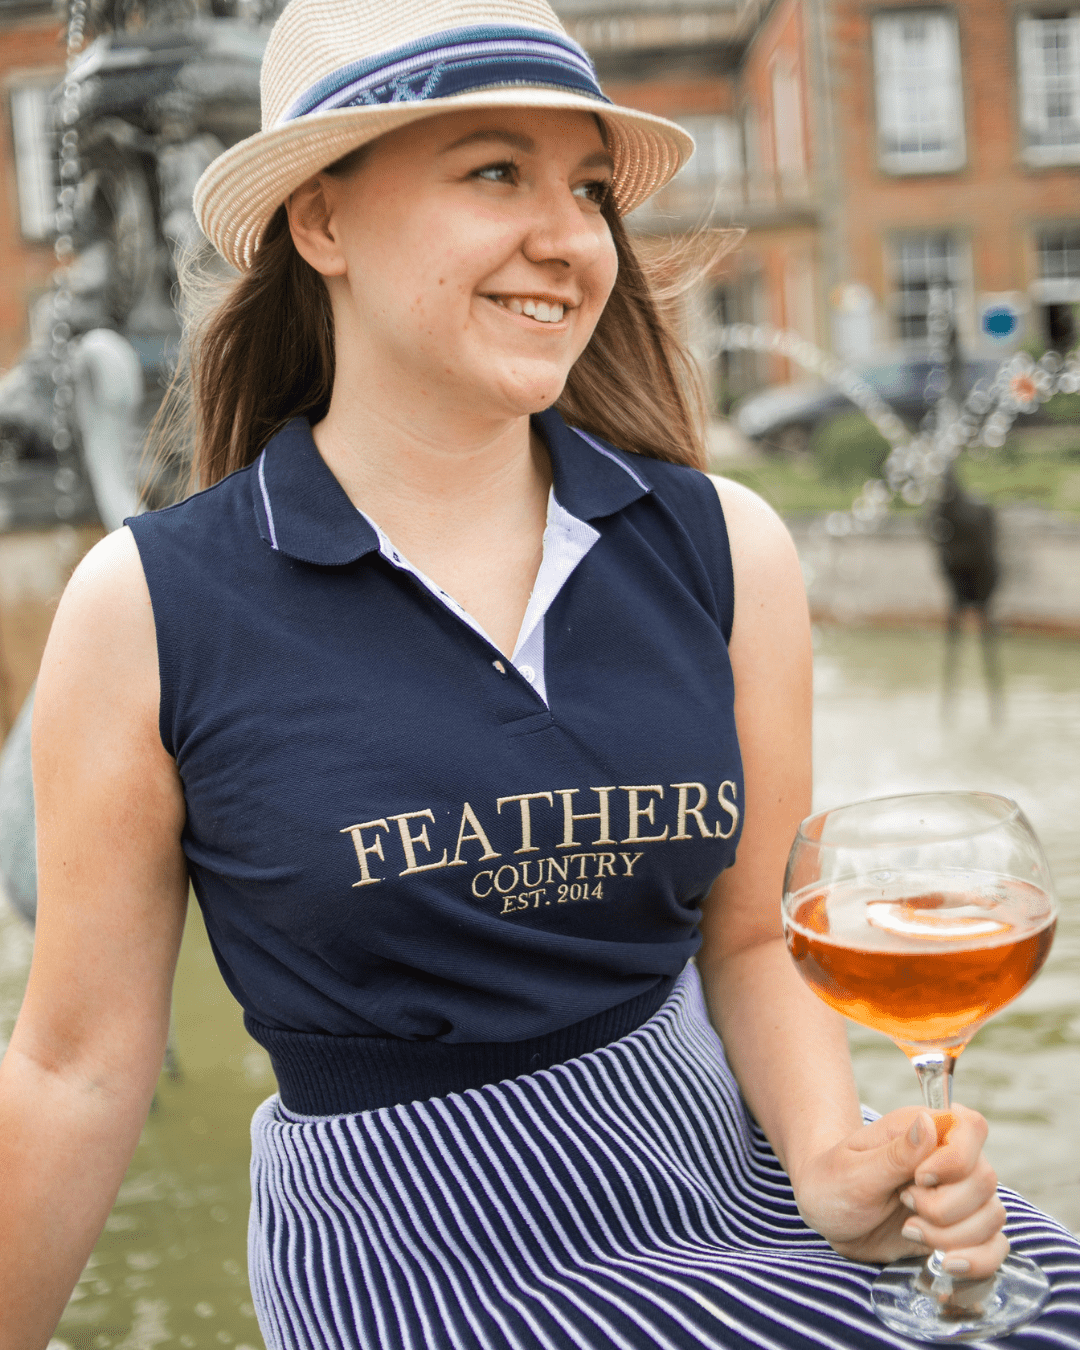 Amy wearing Feathers Country